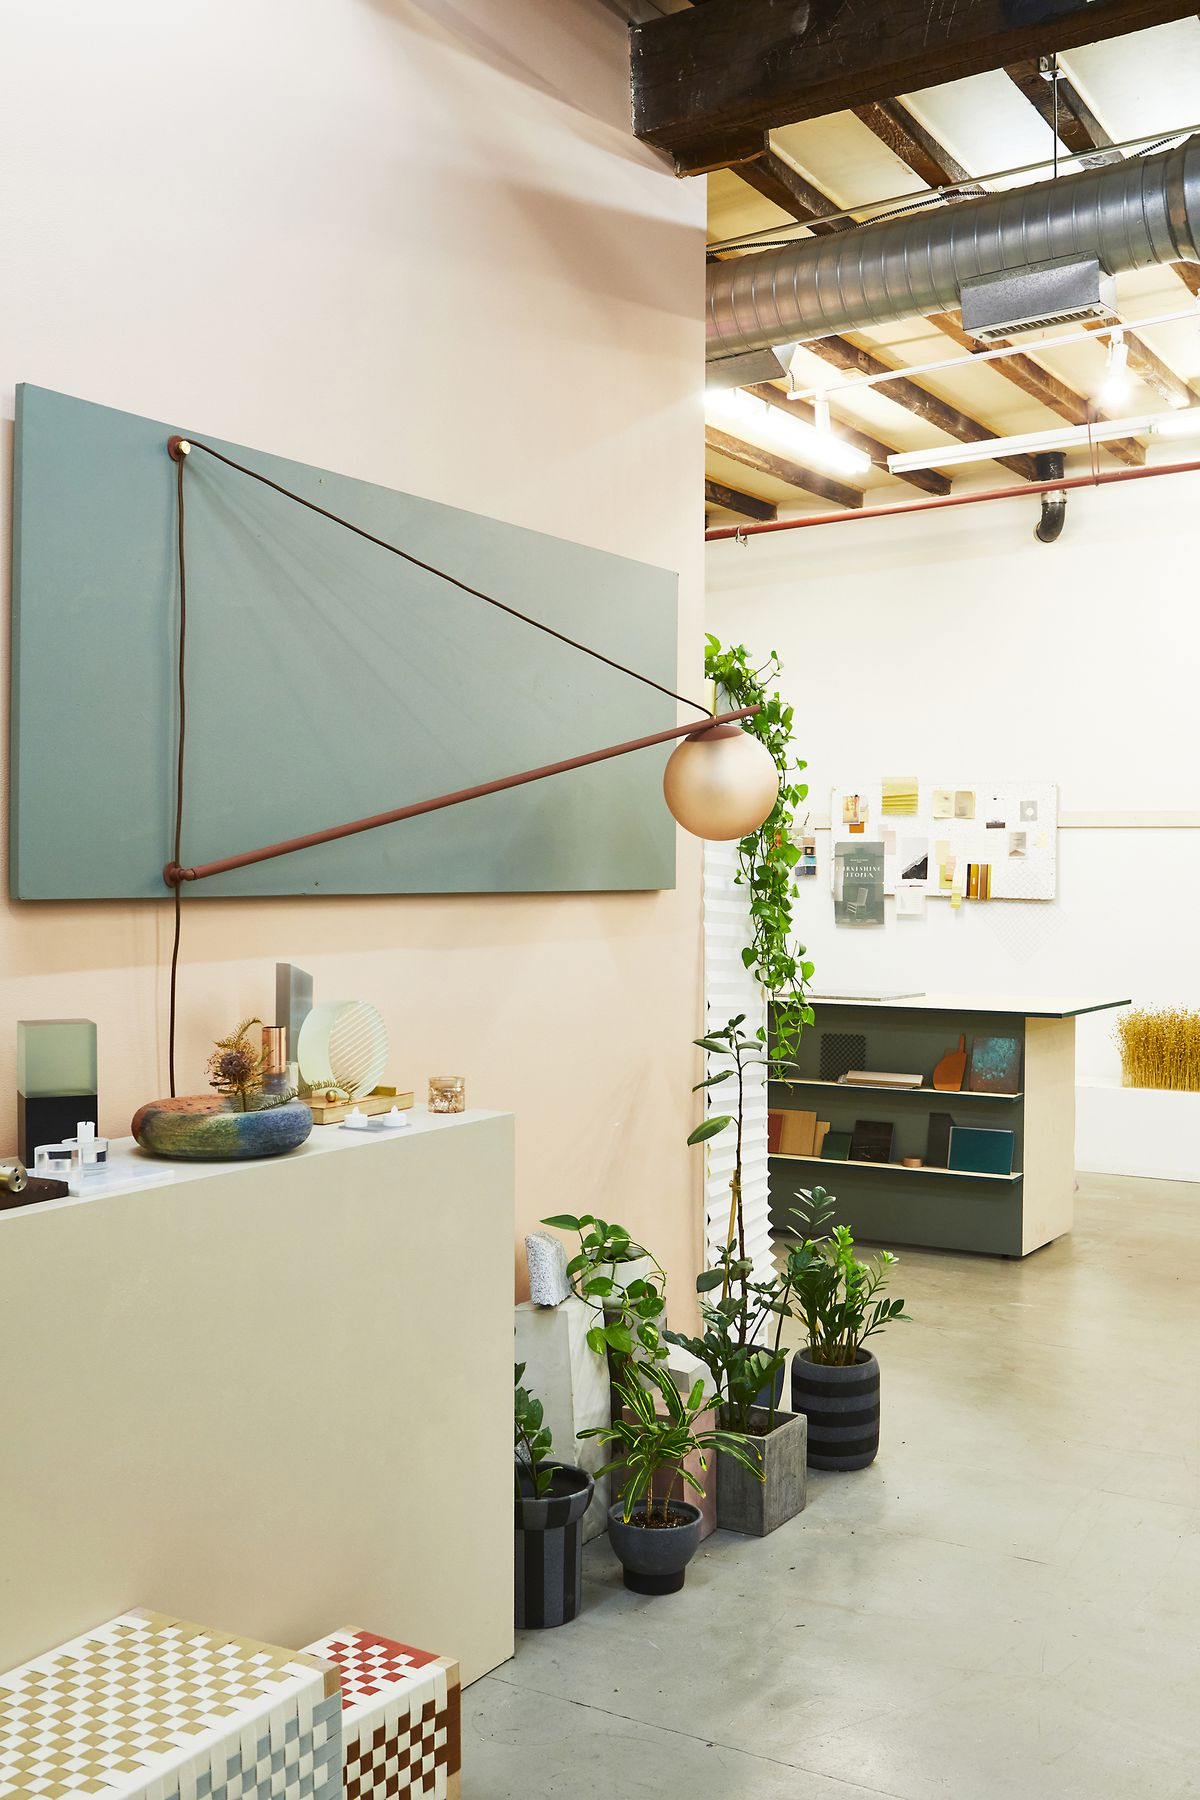 A corner of Ladies & Gentlemen Studio, has a light fixture attached to the wall that has a green background and brass and a round glass shade. There are a number of plants on the floor and a shelf with objects.